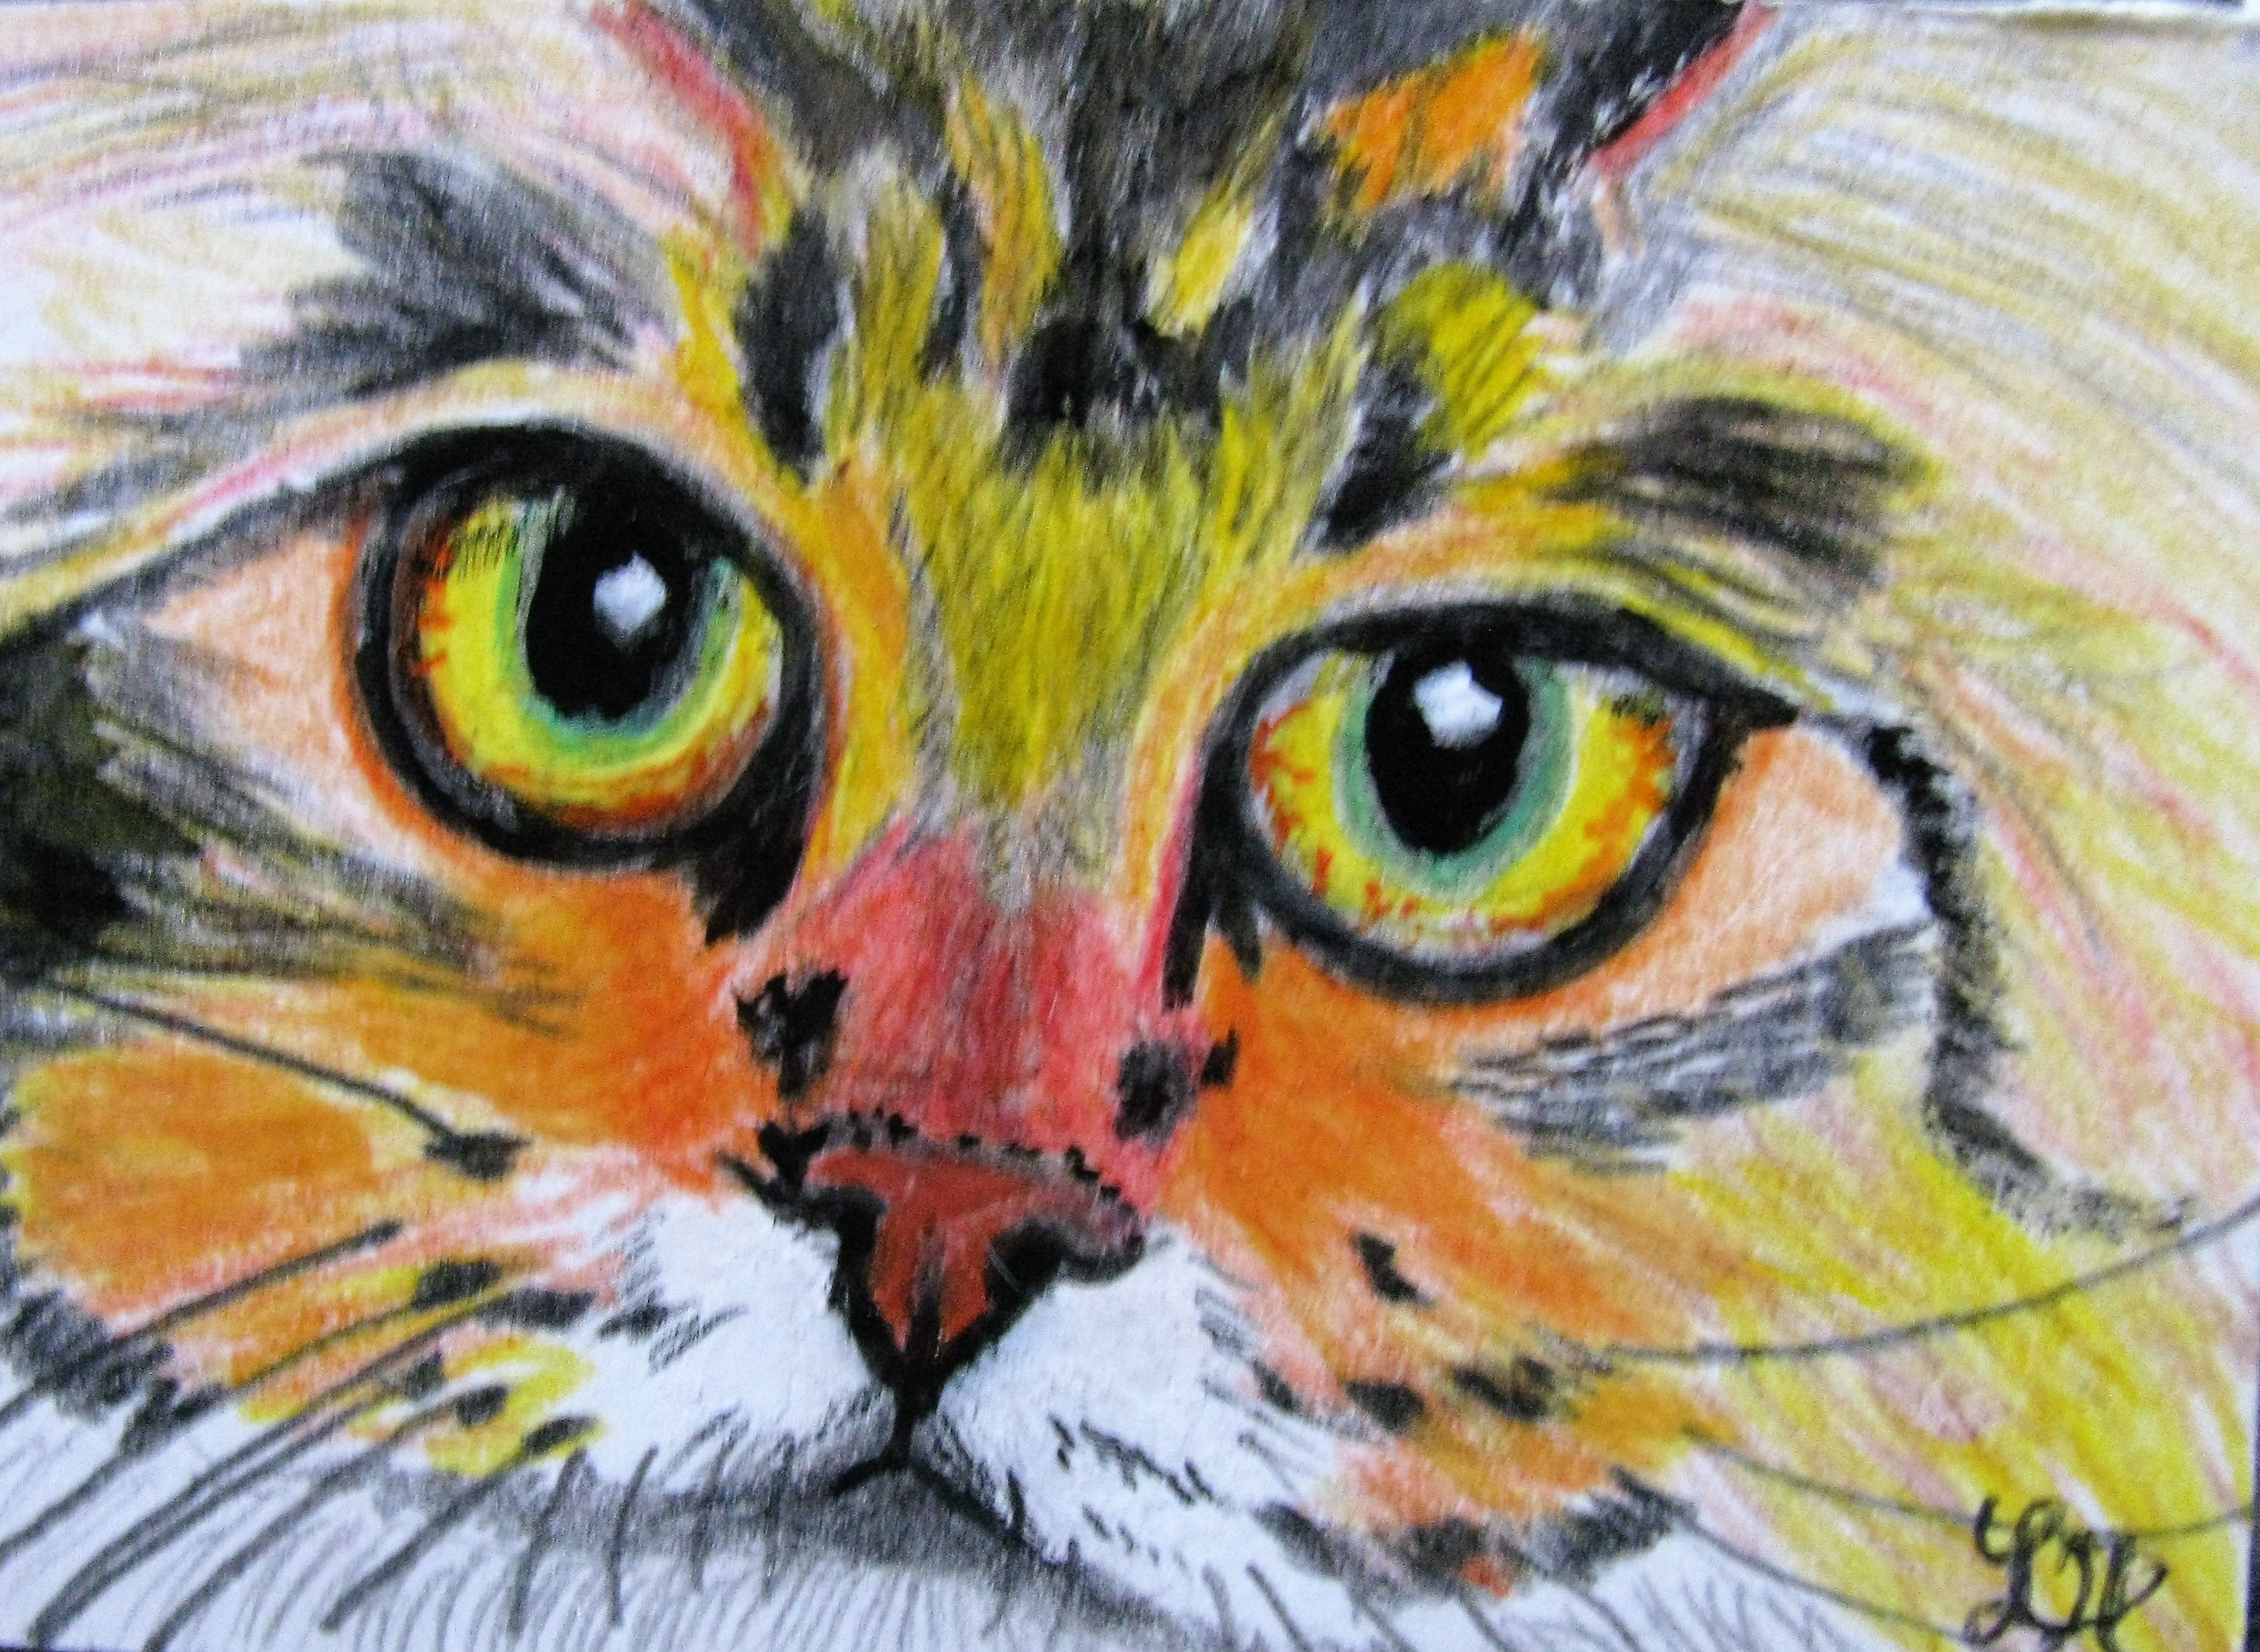 'PIPPO' ORIGINAL ACRYLIC PAINTING A286 ACEO $20.00